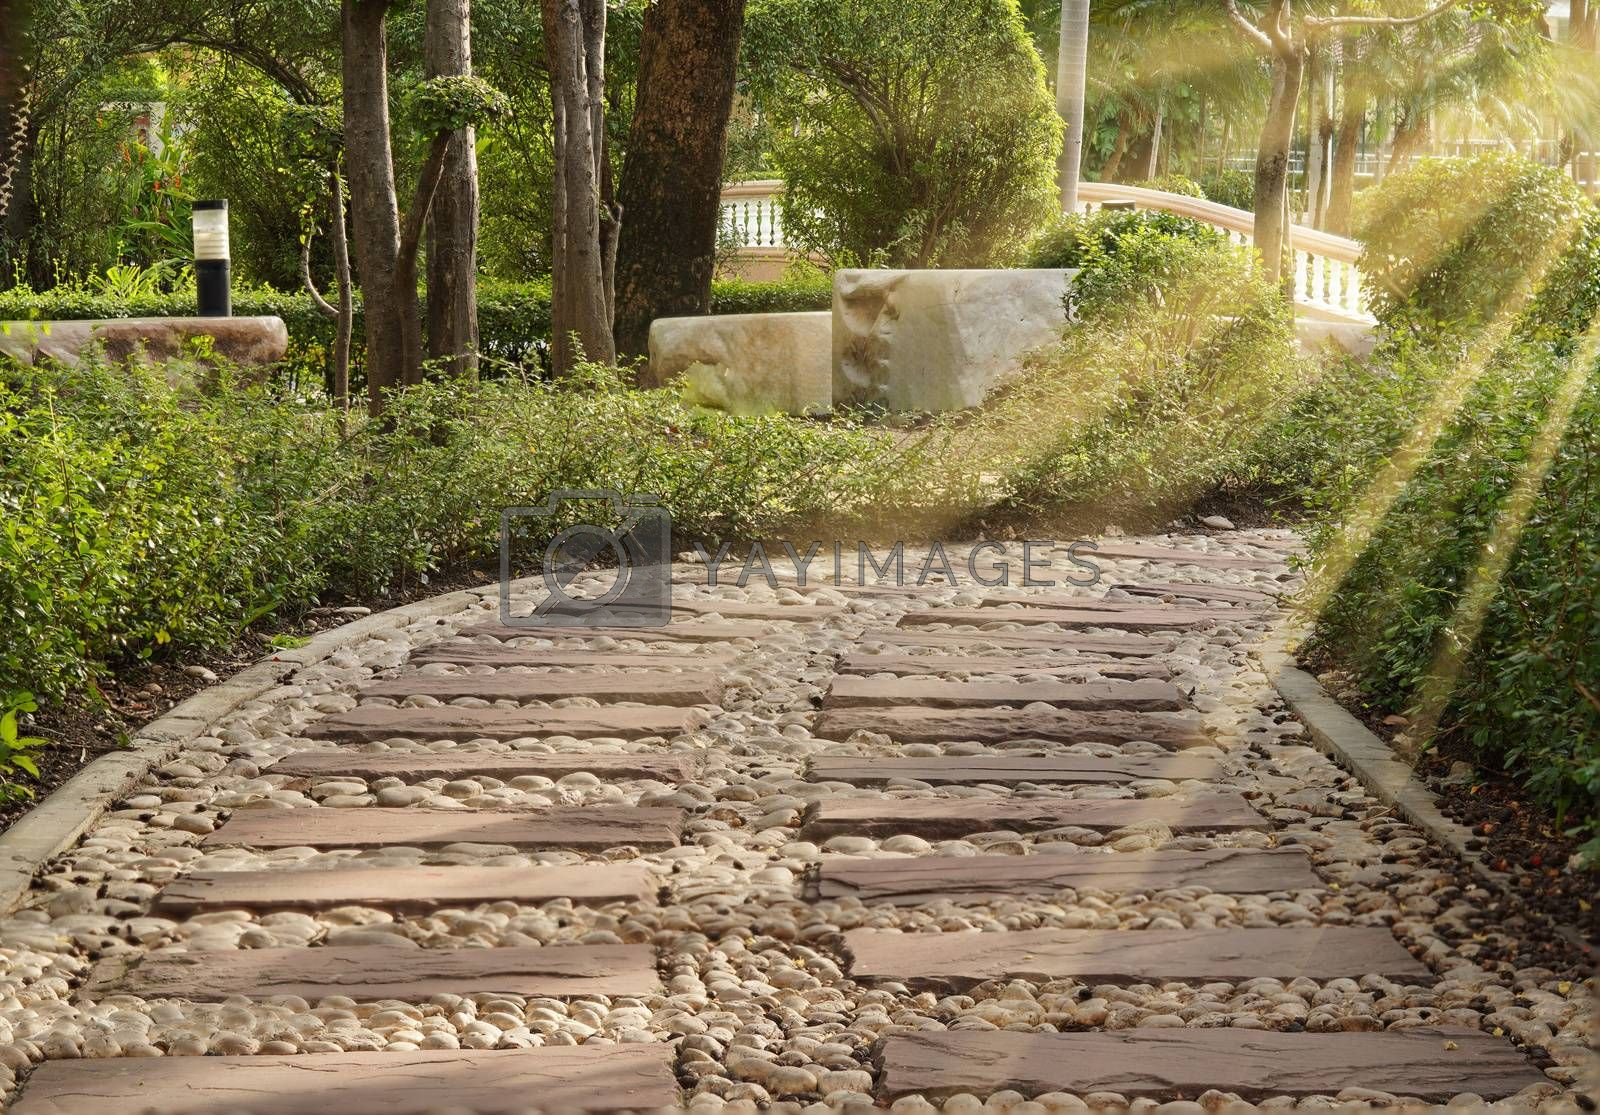 The walking path paved with cobbles and wood floors, the morning sun shines.